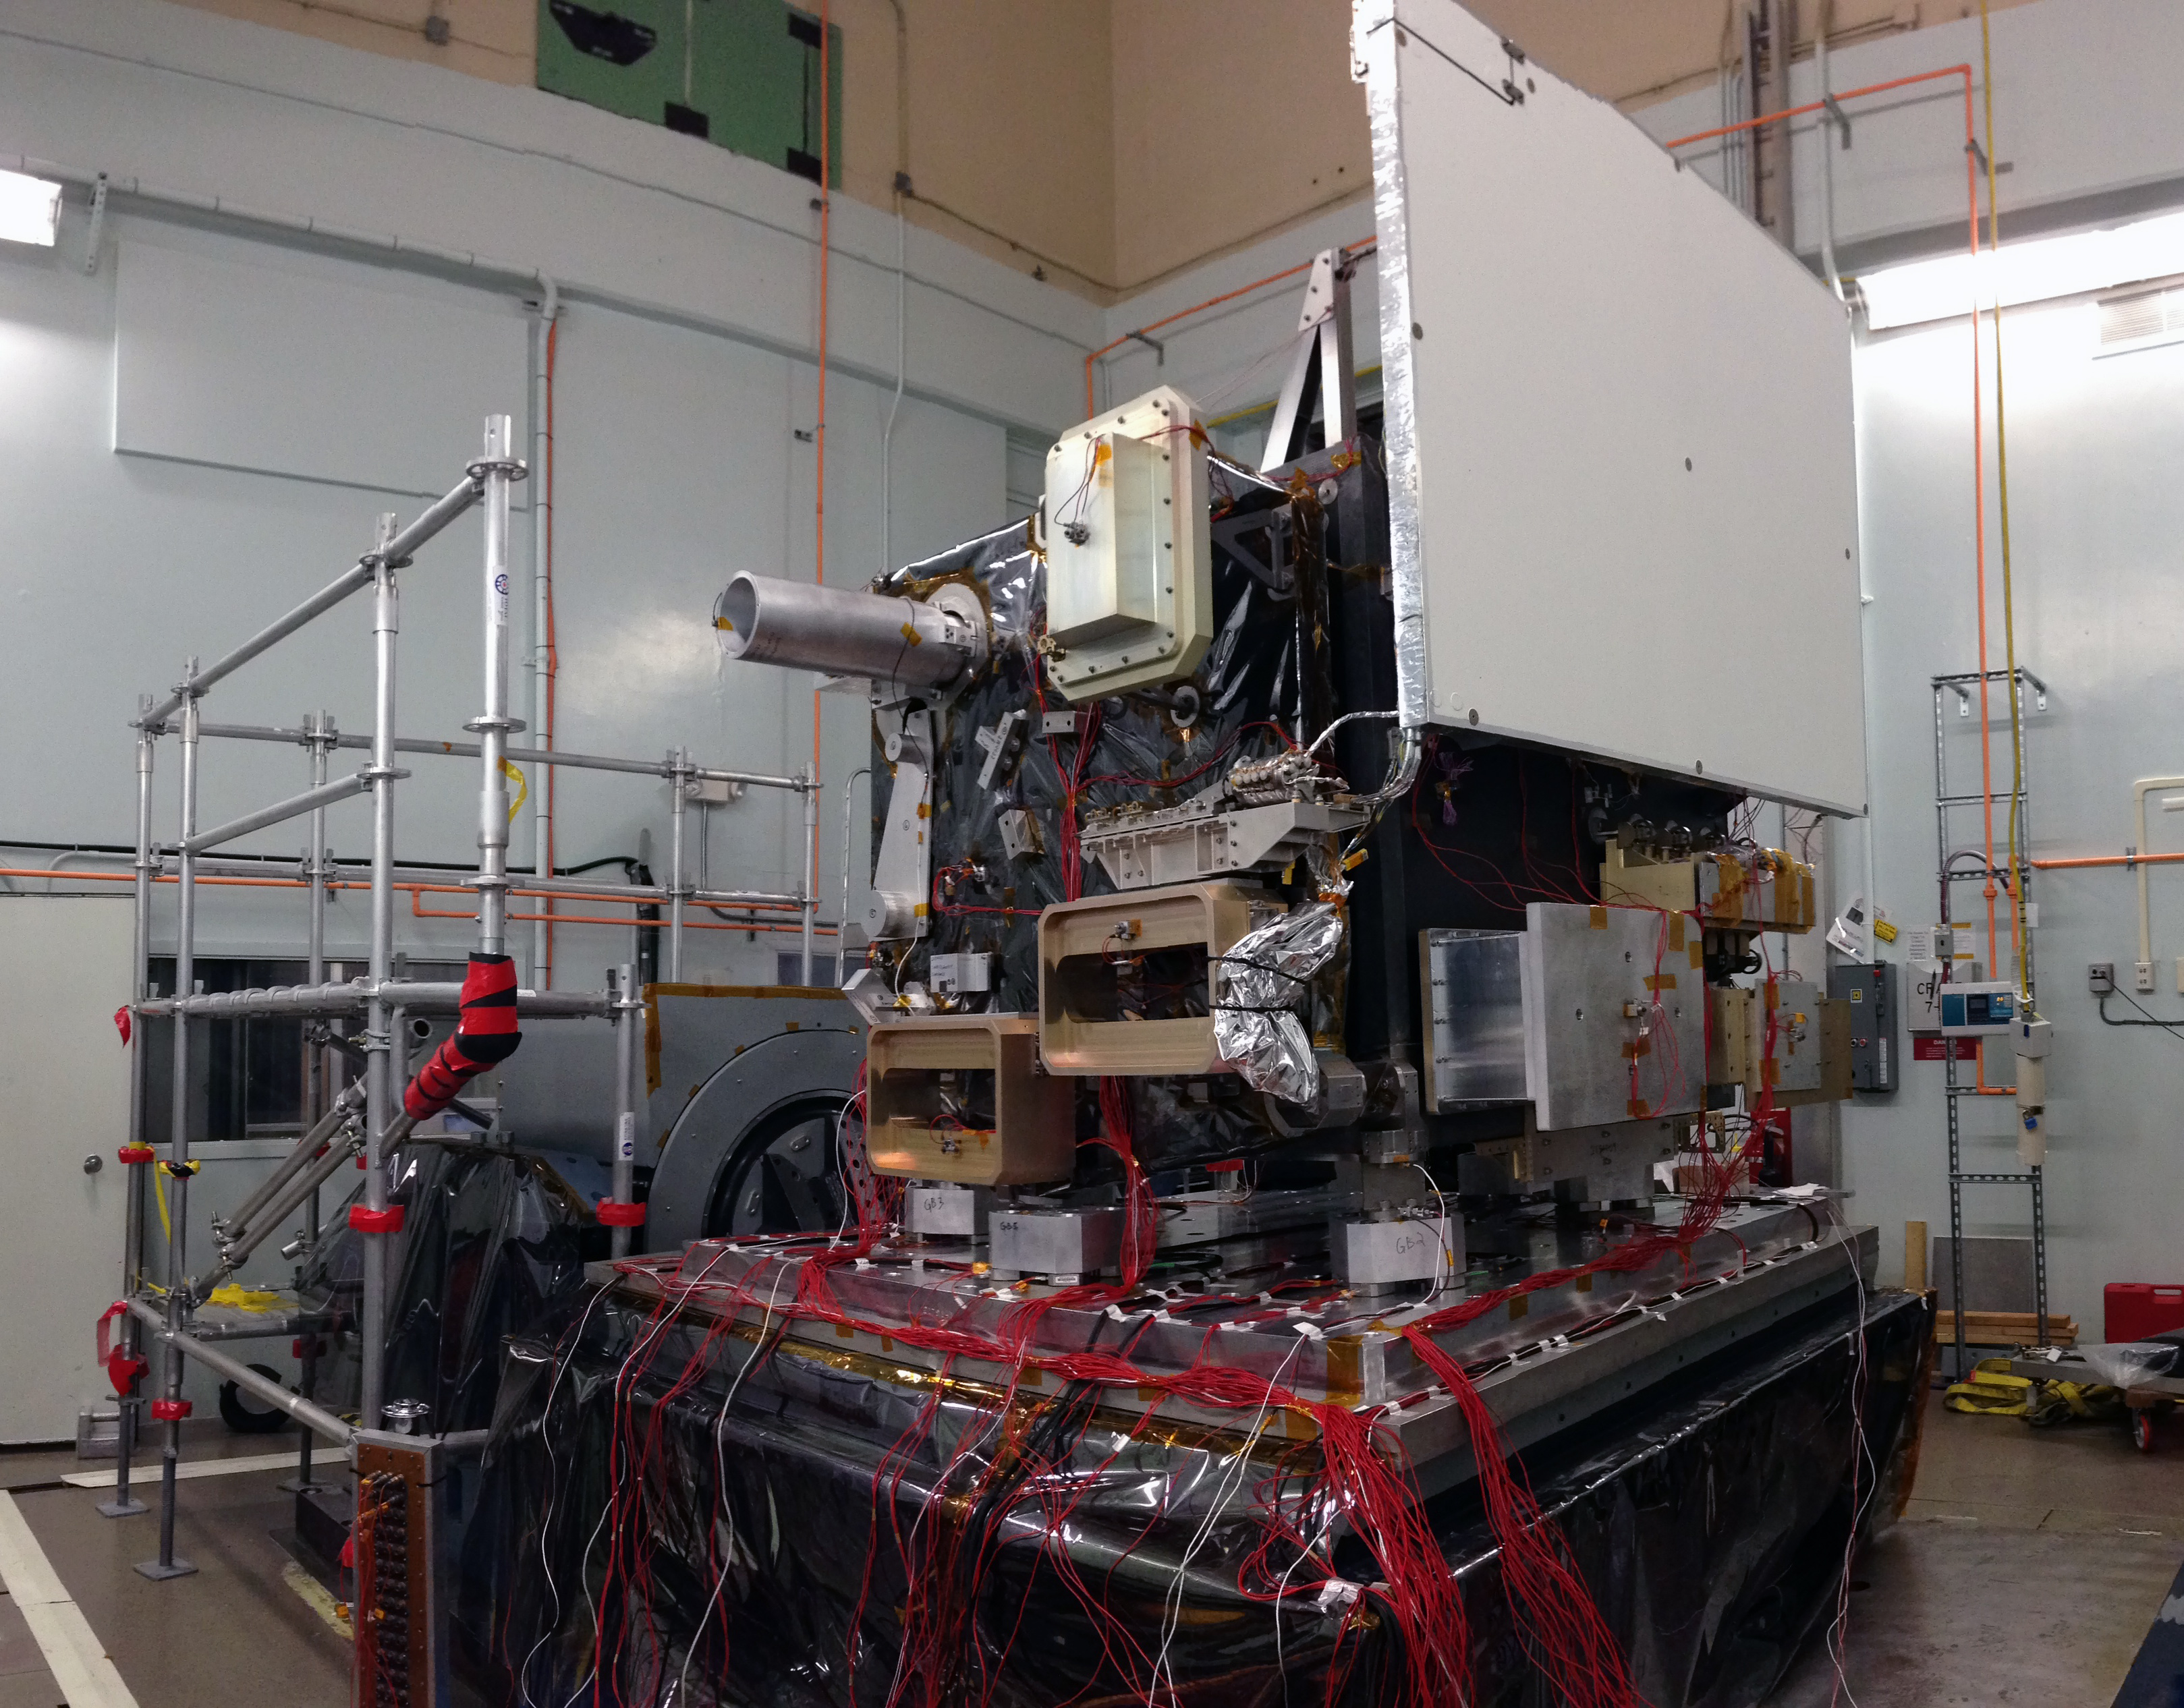 The ATLAS box structure, in preparation for its vibration tests, which will ensure the box can withstand the jolts of launch. To test the box structure, the team attached mass simulators to stand in for components that will be delivered later, including the star tracker and lasers. Image Credit:  NASA's Goddard Space Flight Center/Kate Ramsayer